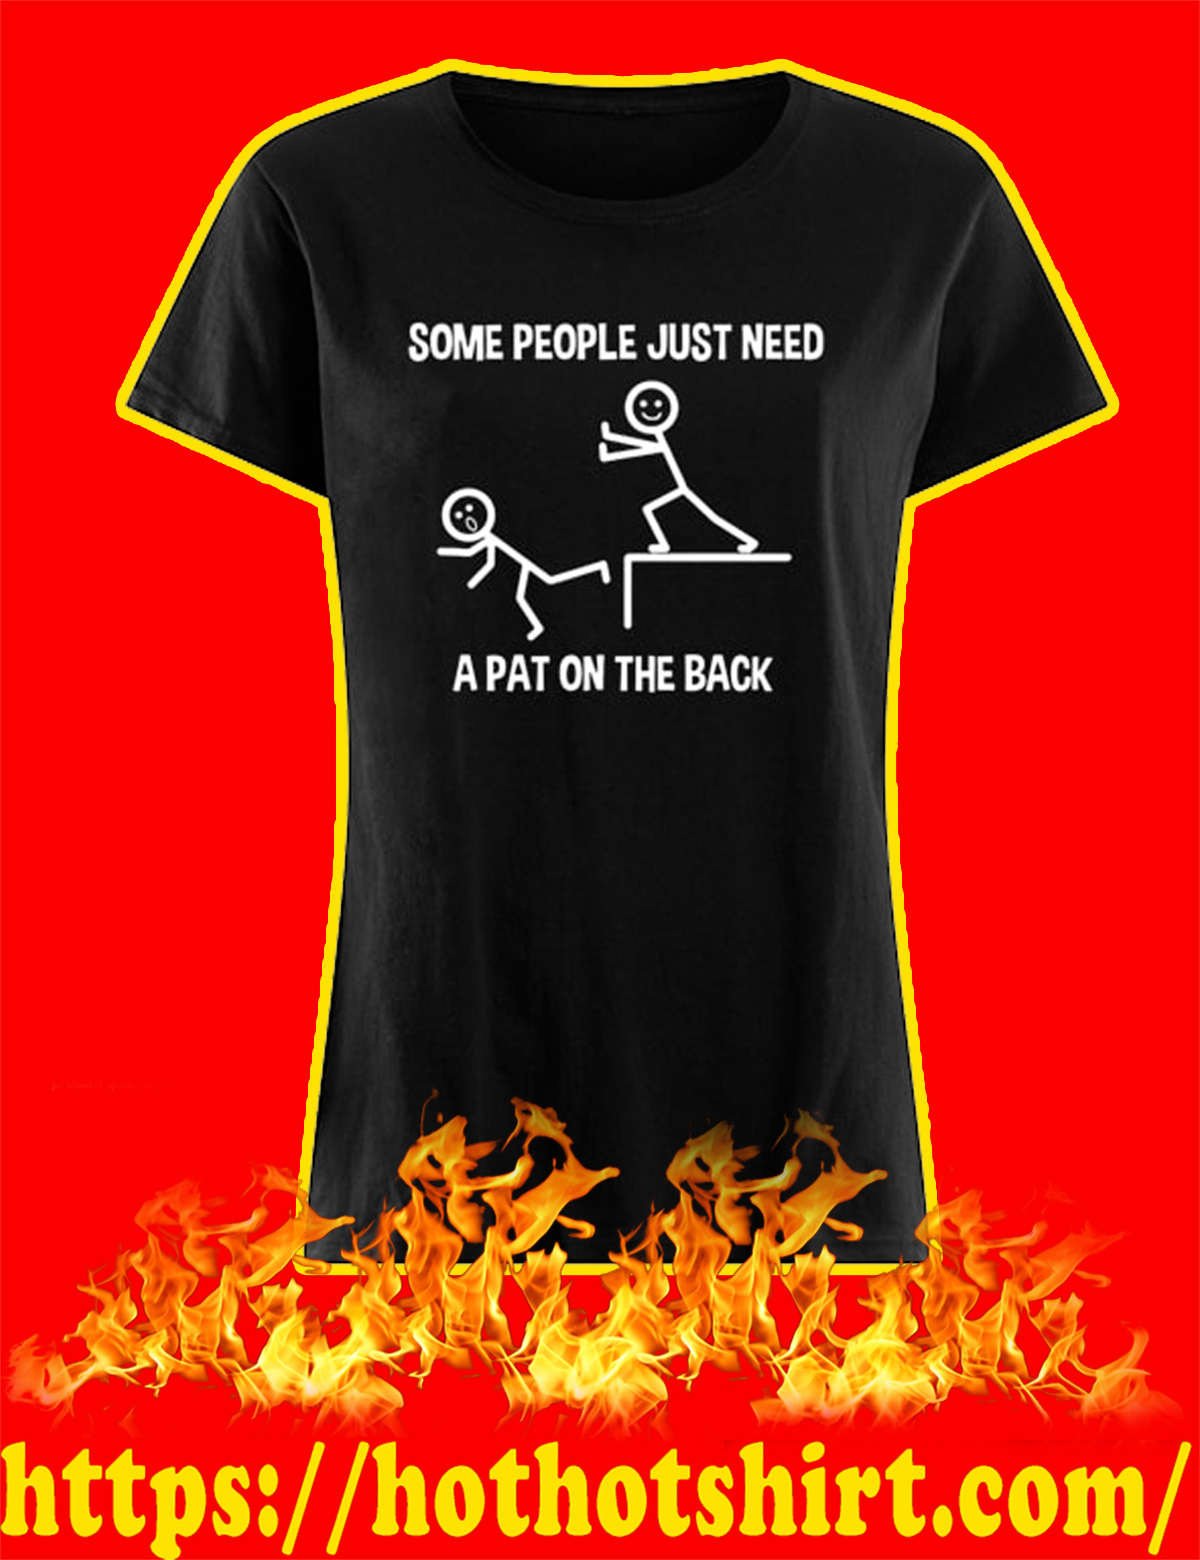 Some People Just Need A Pat On The Back Women's T Shirt